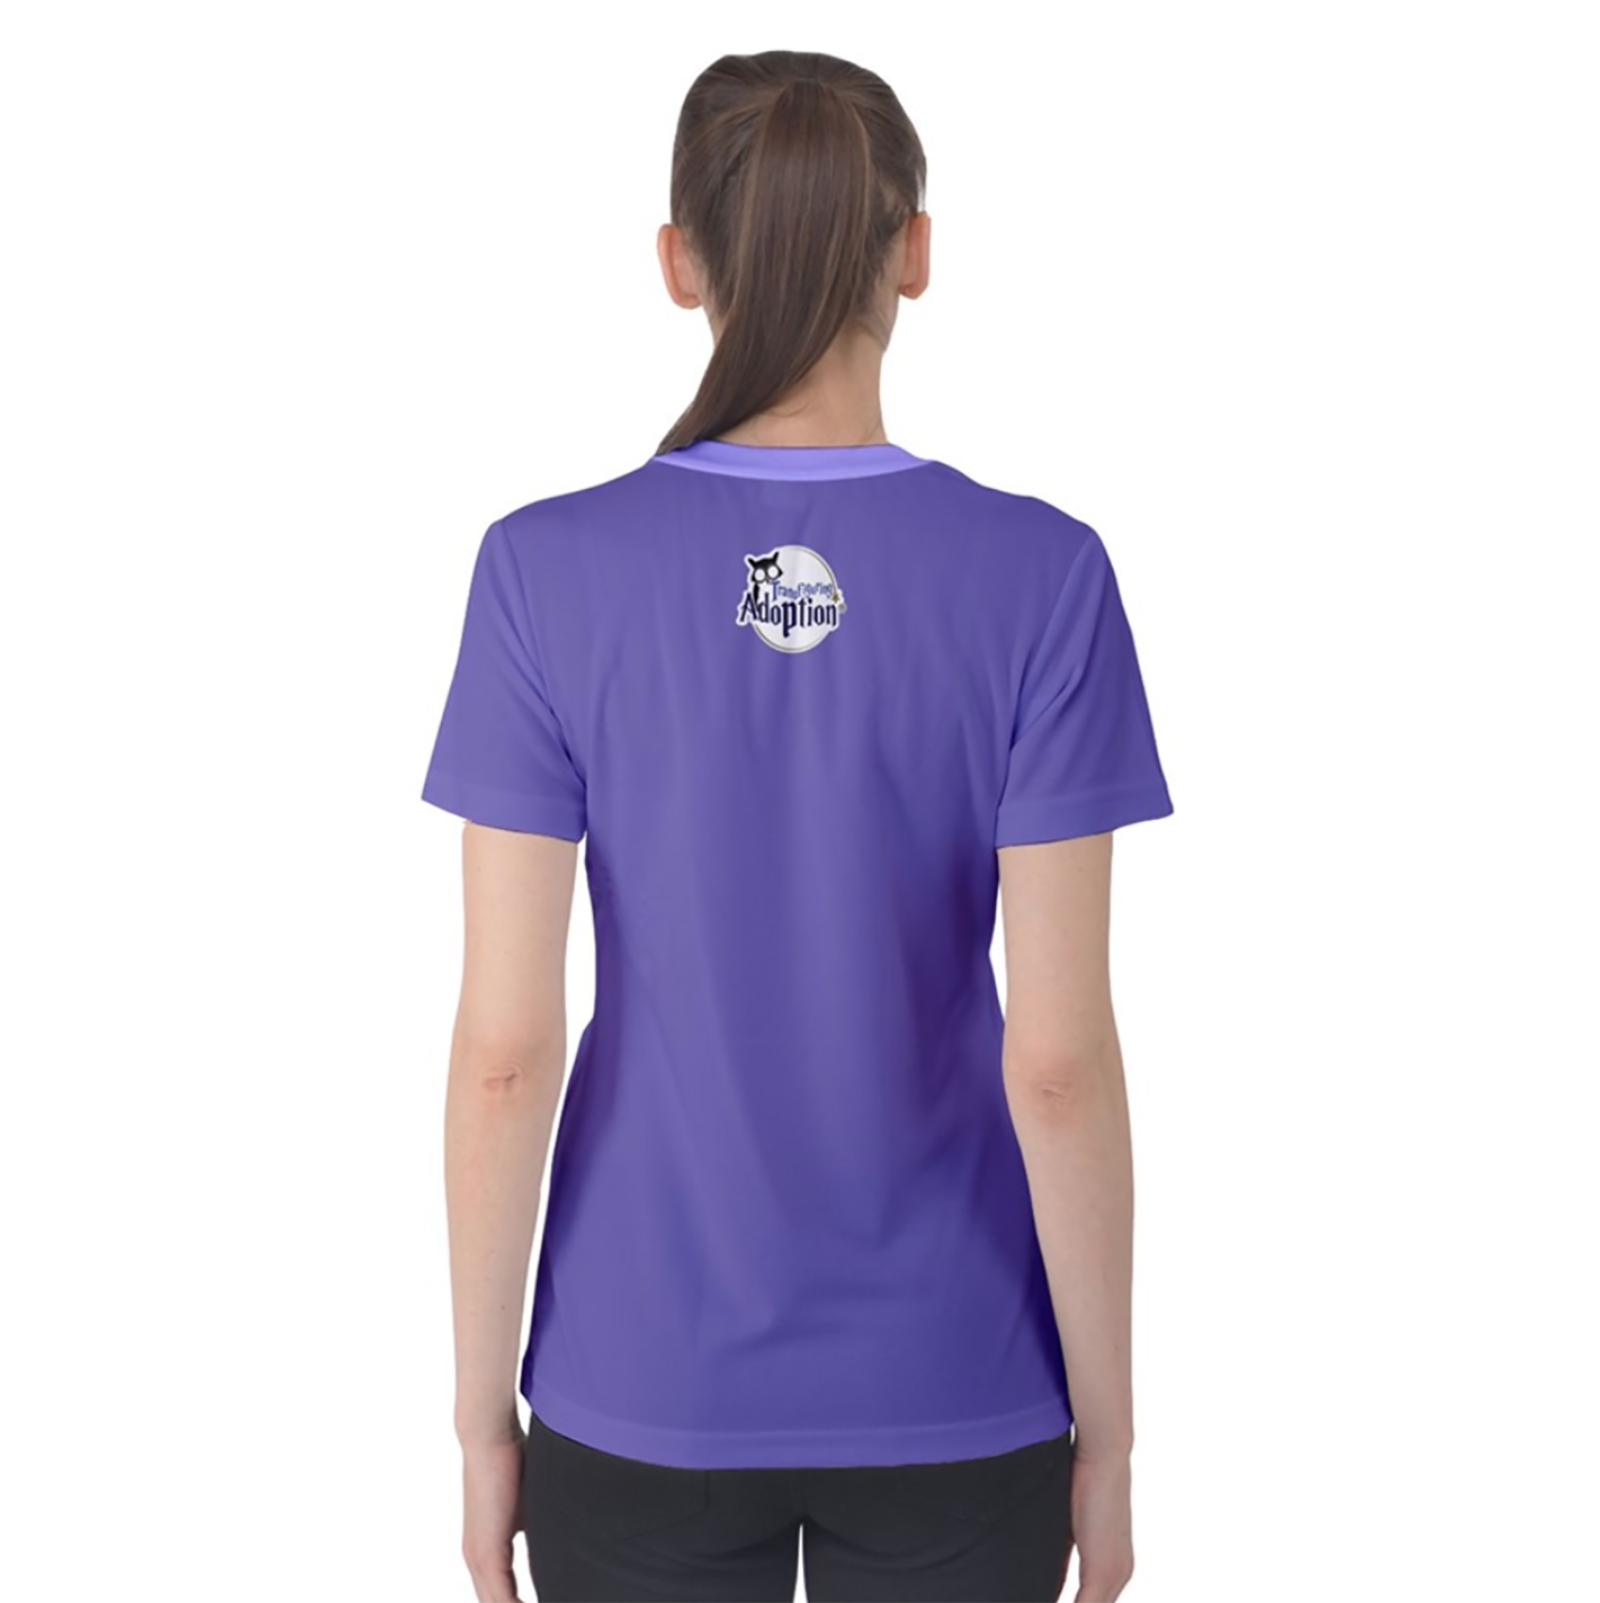 Charmed Women's Cotton Tee (Solid Purple Just Logo)